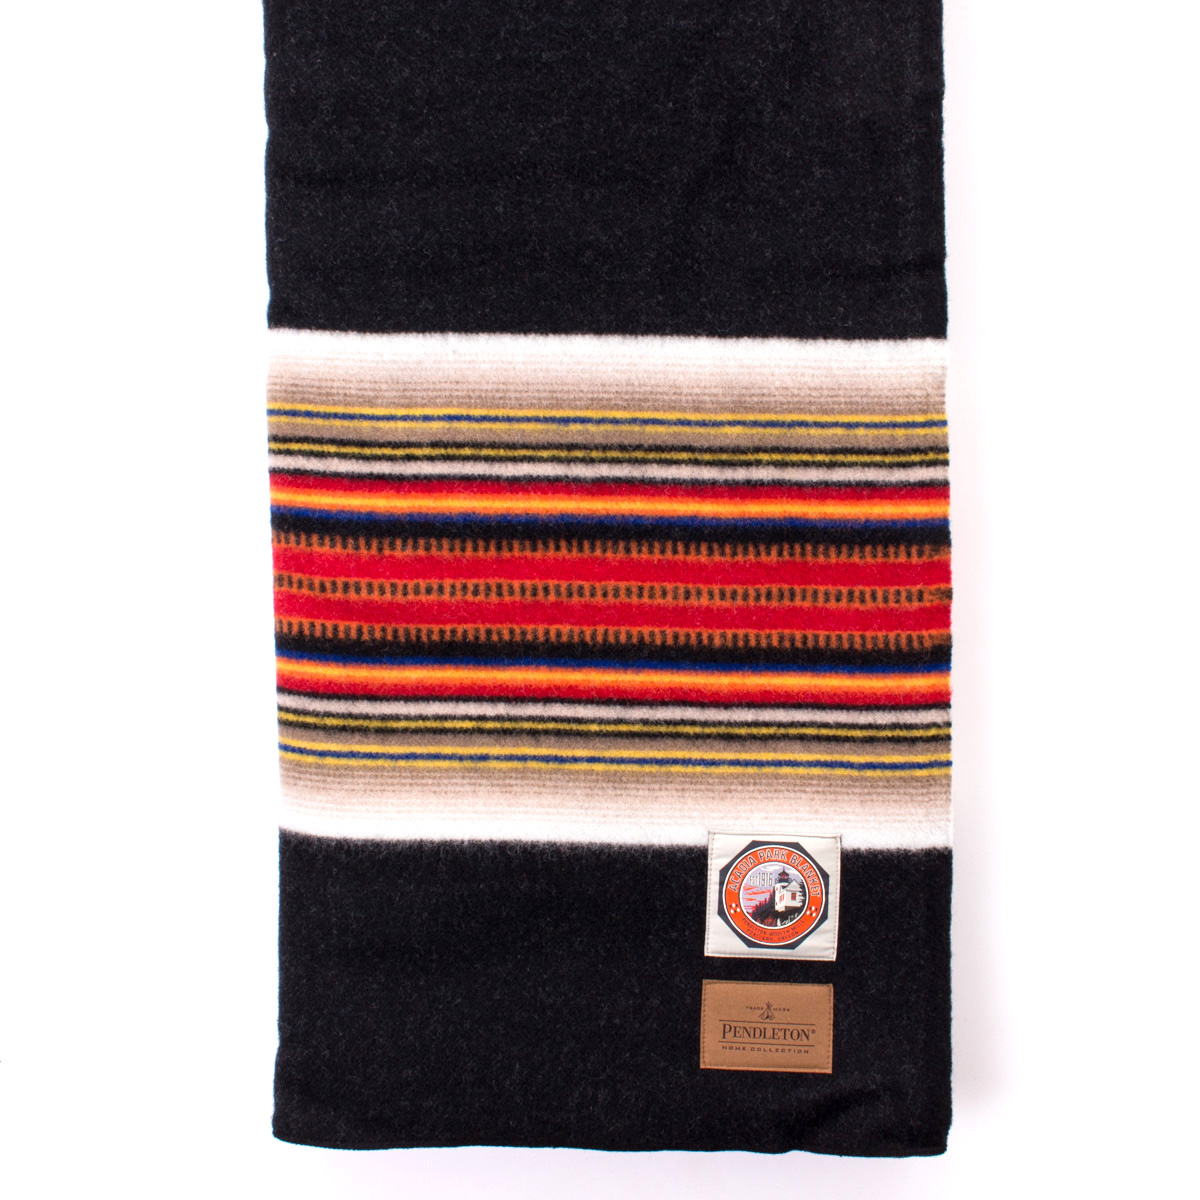 Pendleton National Park Blanket Full